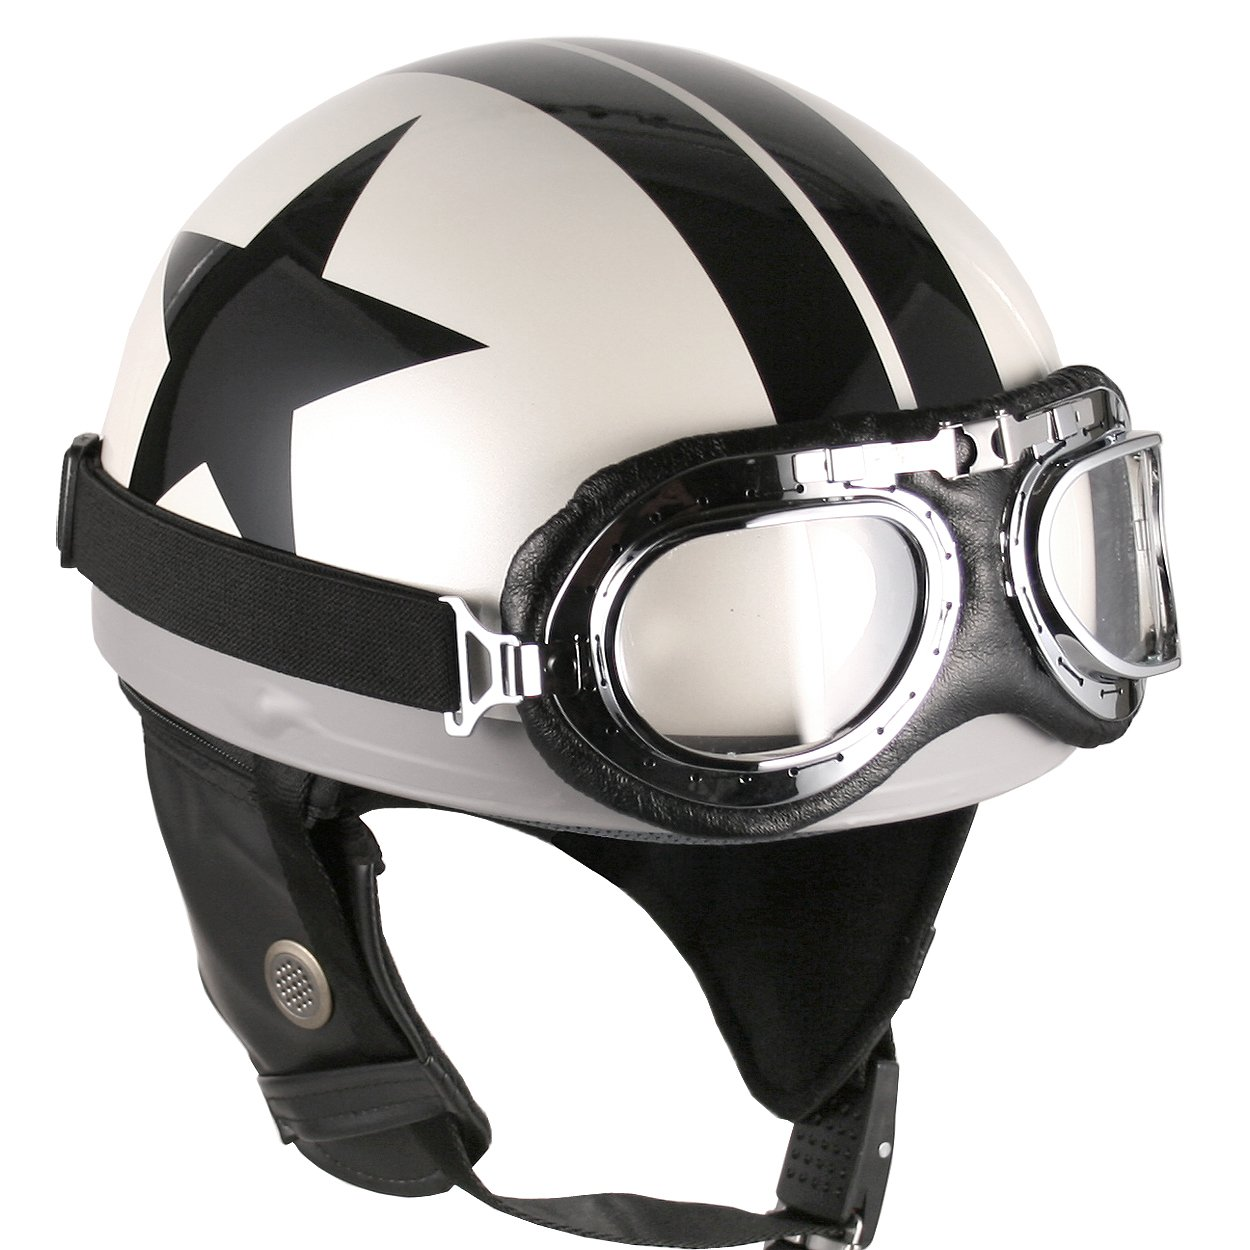 Goggles Vintage German Style Half Helmet (White Black-star , Large) Motorcycle Biker Cruiser Scooter Touring Helmet black aluminum motorcycle accessories deep cut contrast gas fuel tank console door cover for harley touring flhx fltr flht 08 16